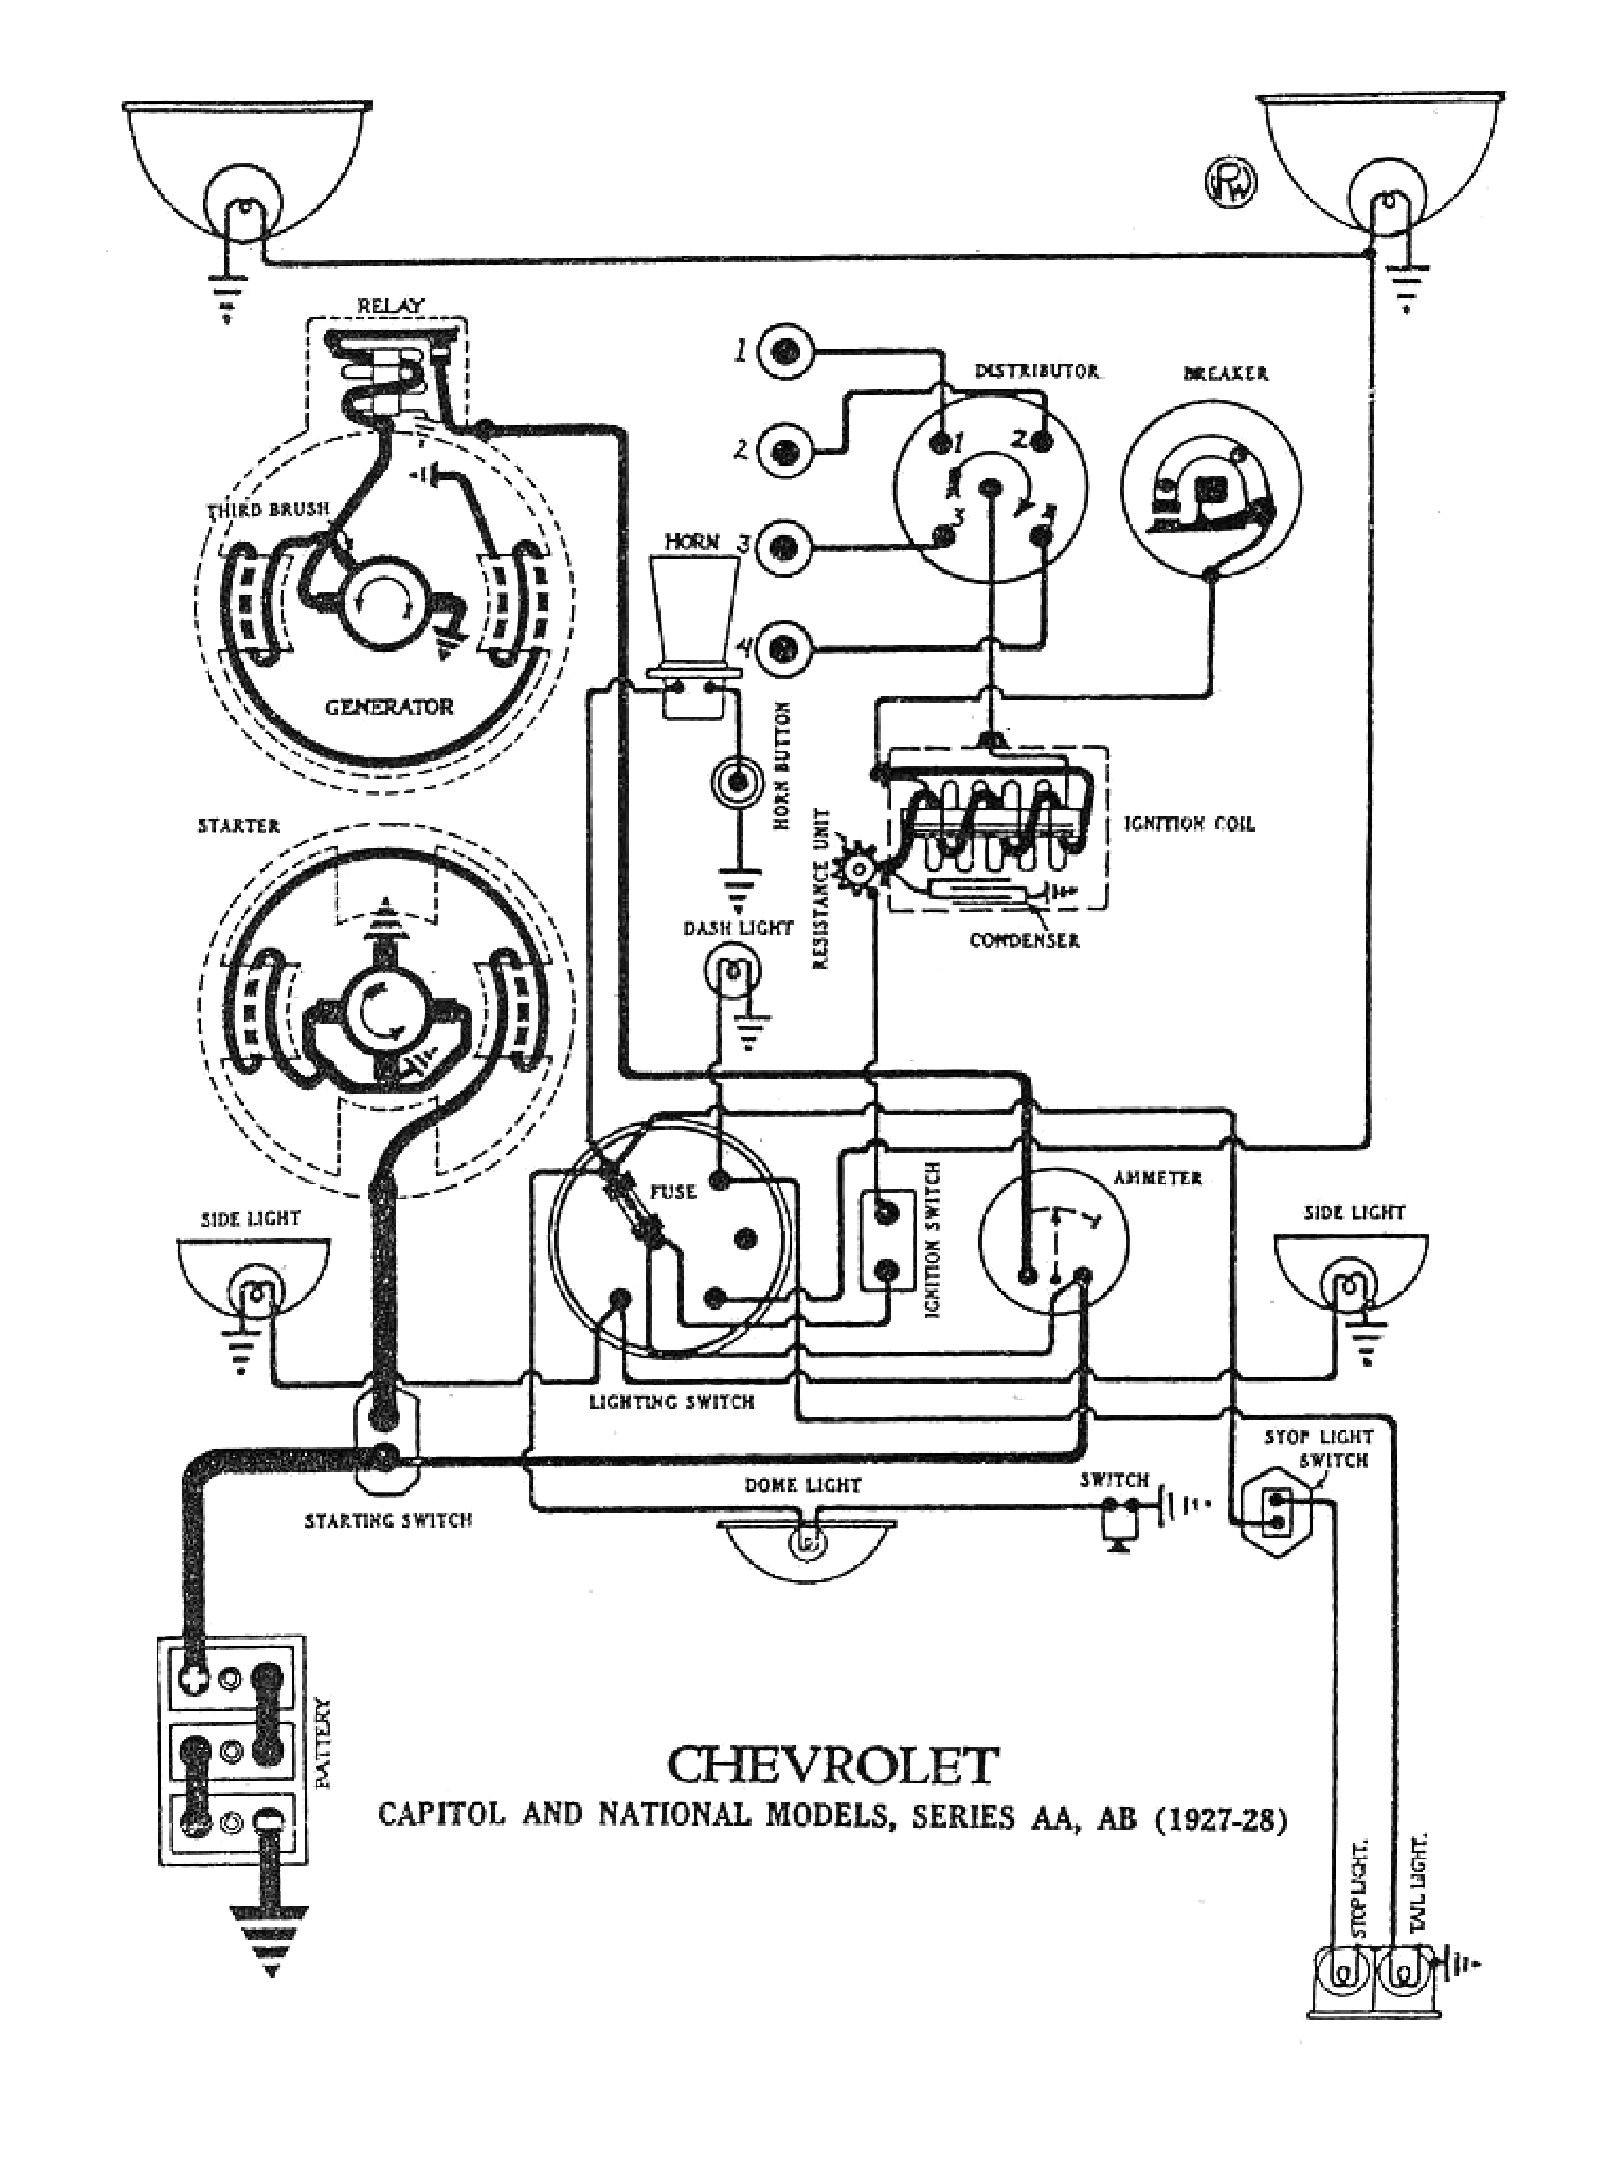 Car Engine Diagrams Free Wiring Diagrams Of Car Engine Diagrams Free